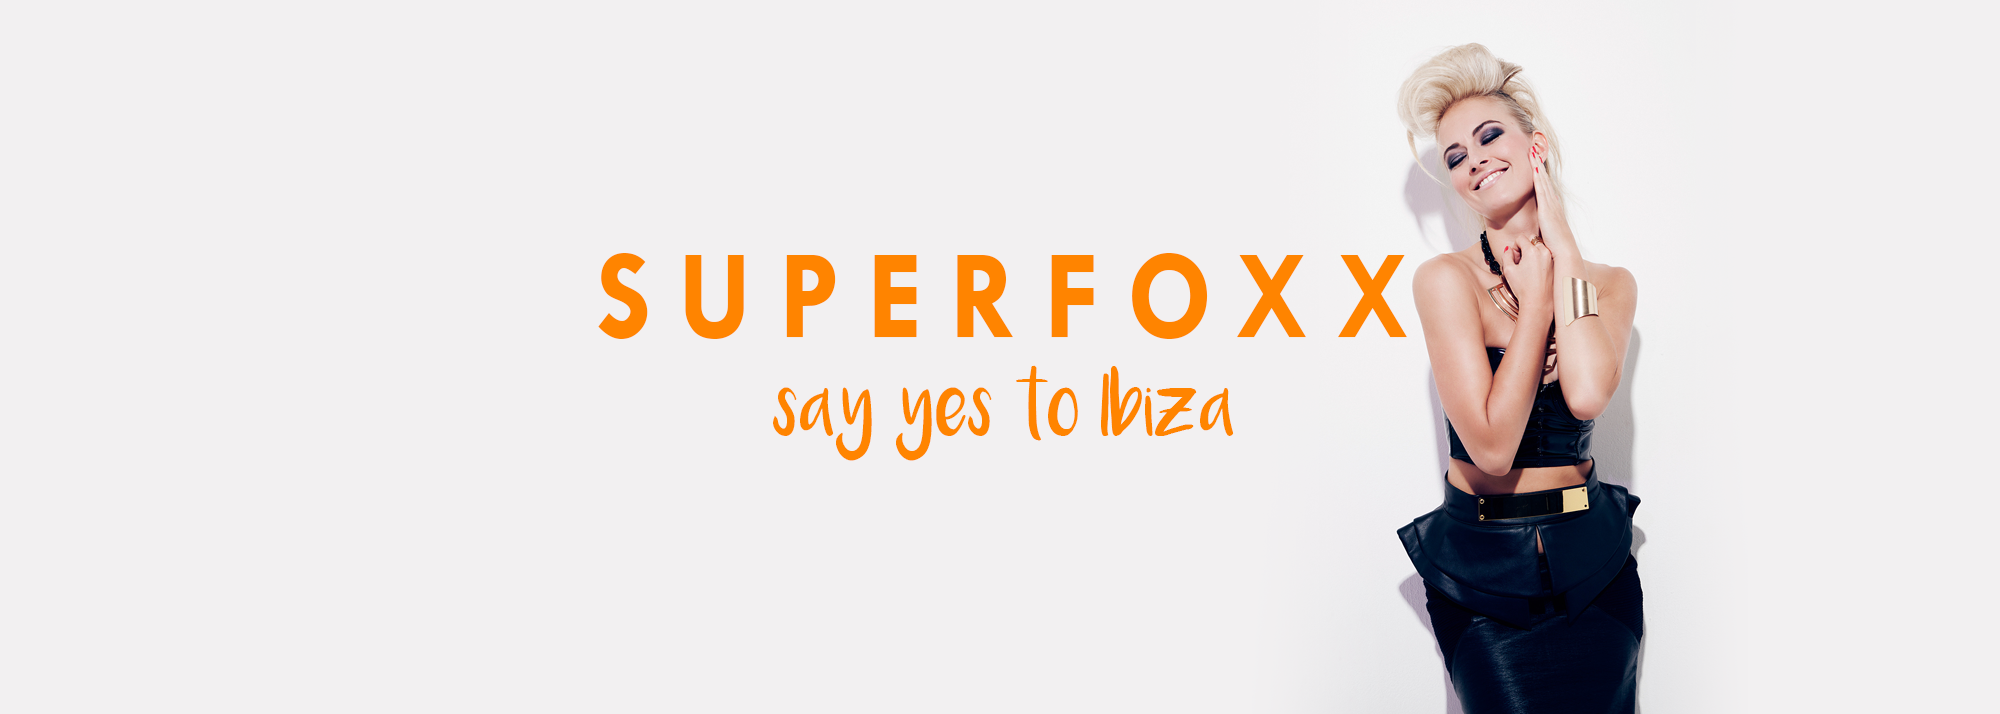 SUPERFOXX SAY YES 2 IBIZA !